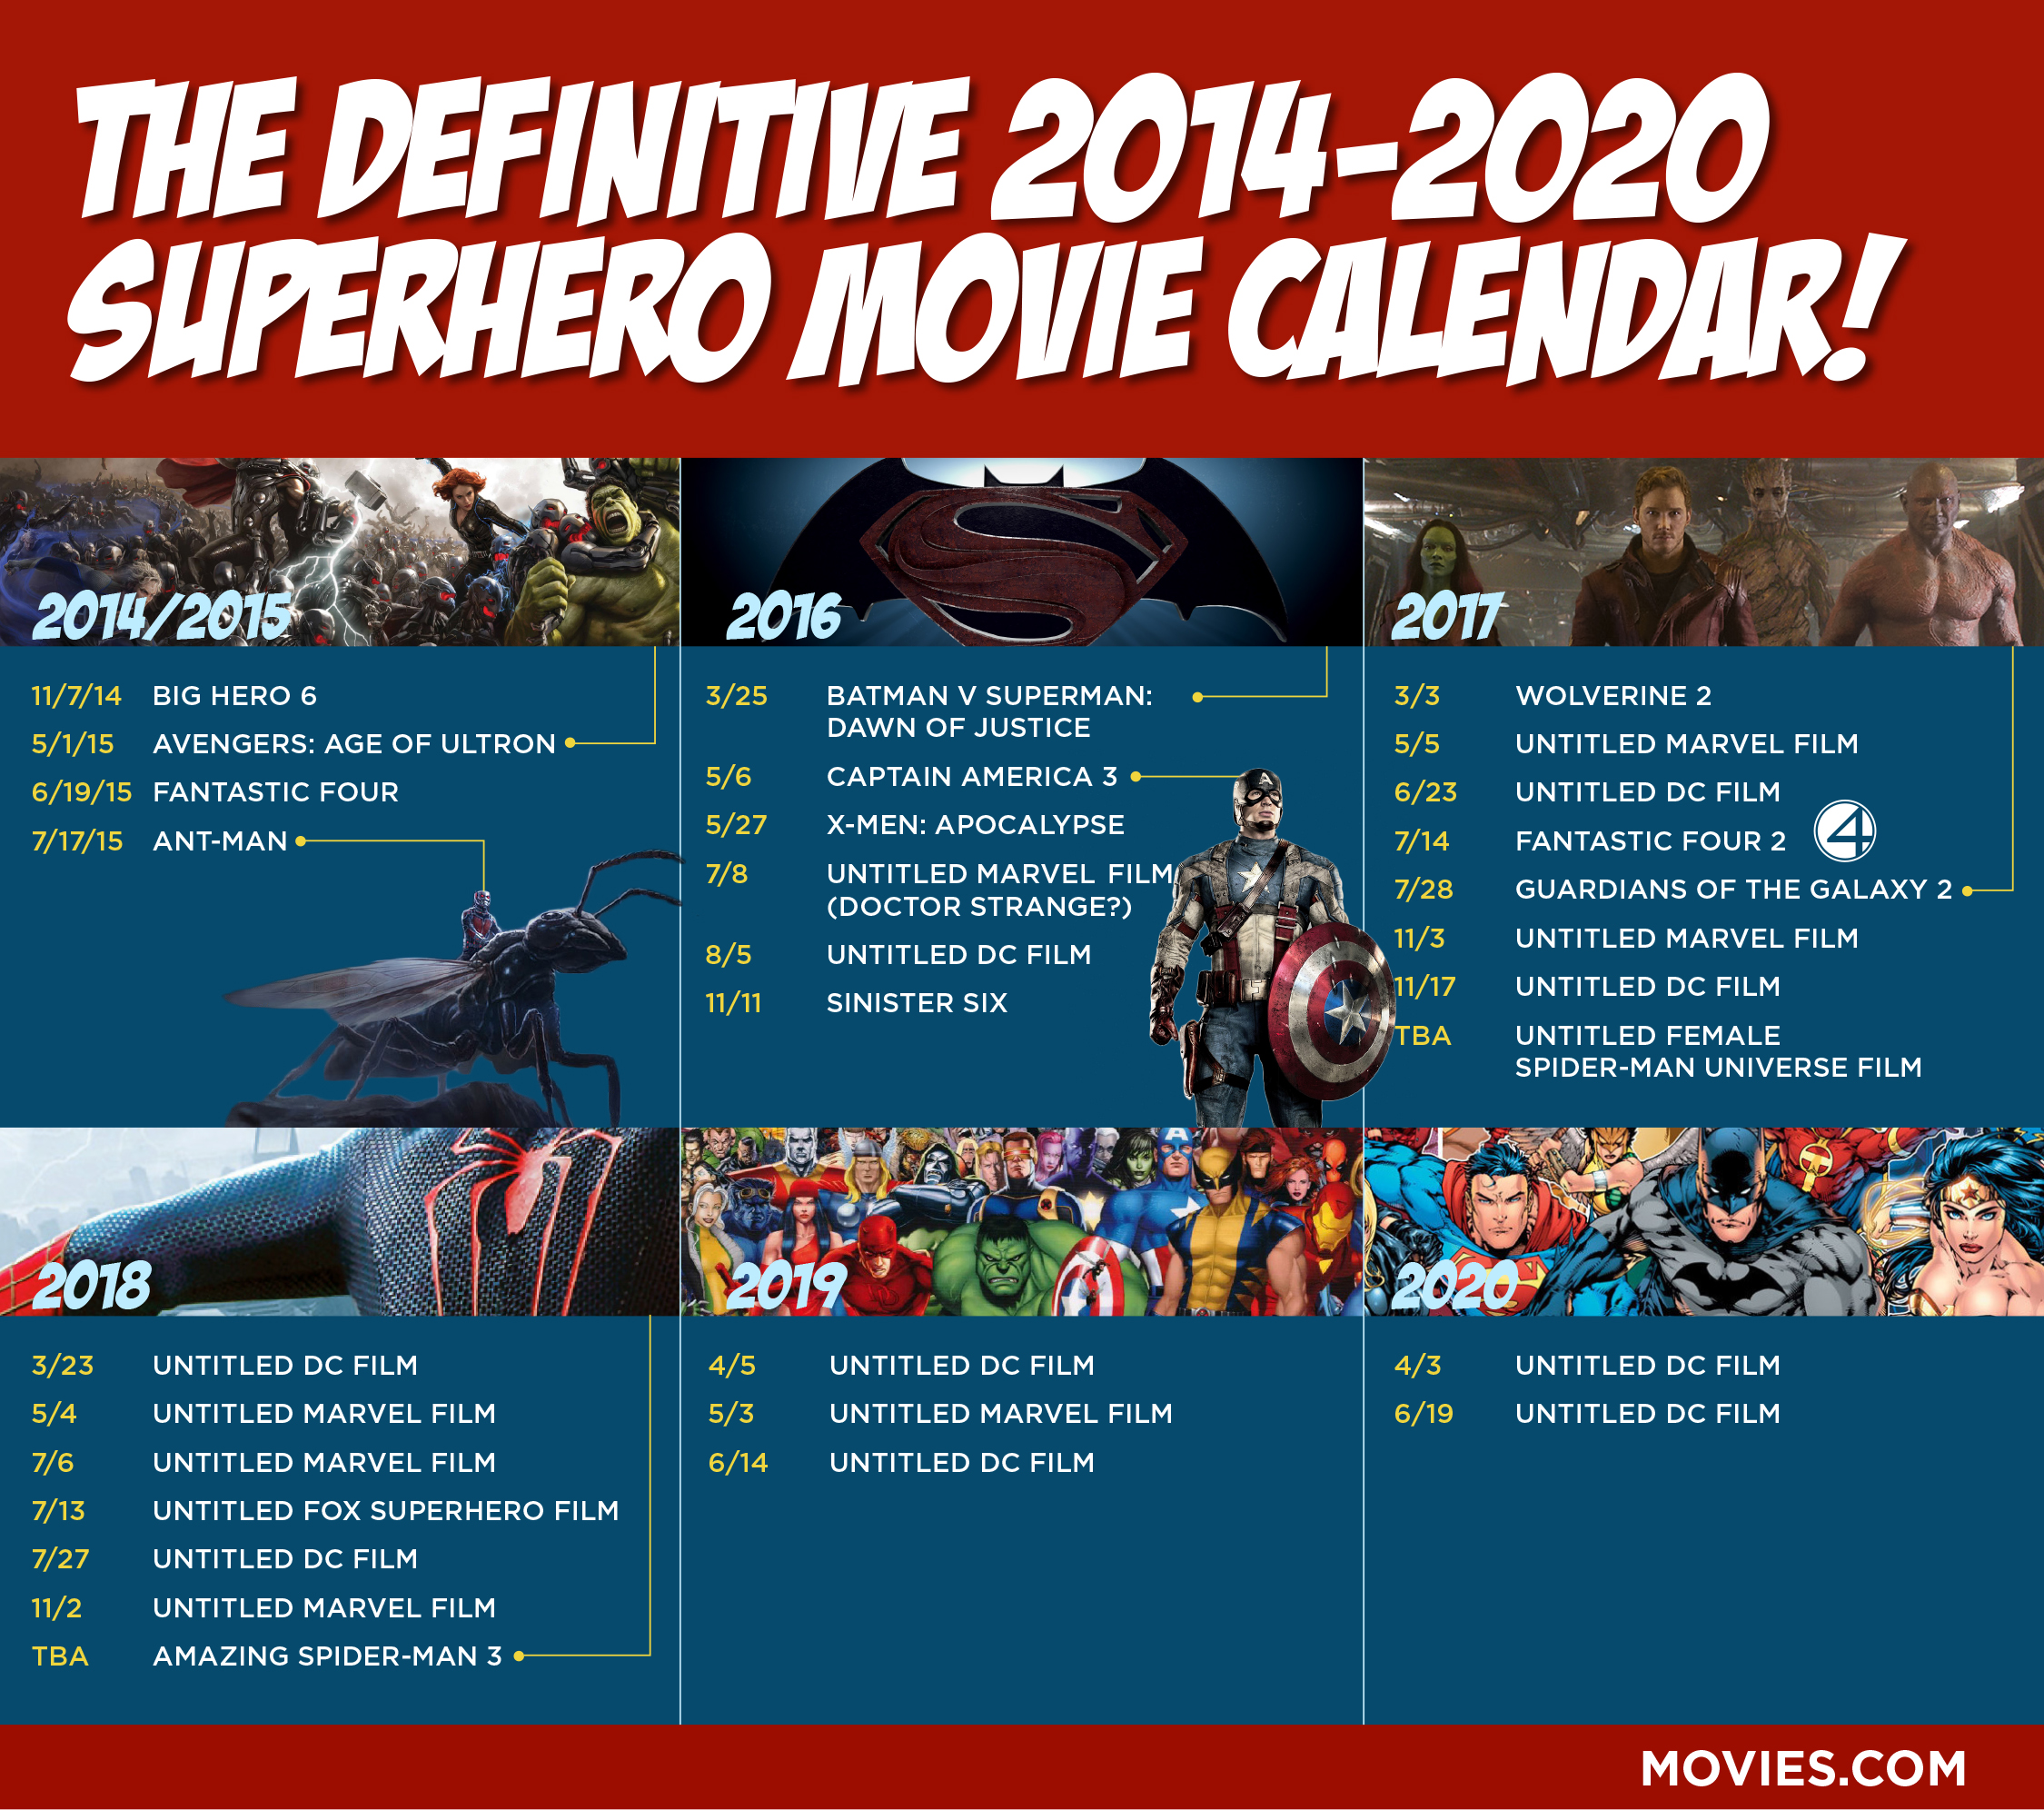 Calendar 2014 And 2020 Definitive 2014 2020 Superhero Movie Calendar : movies